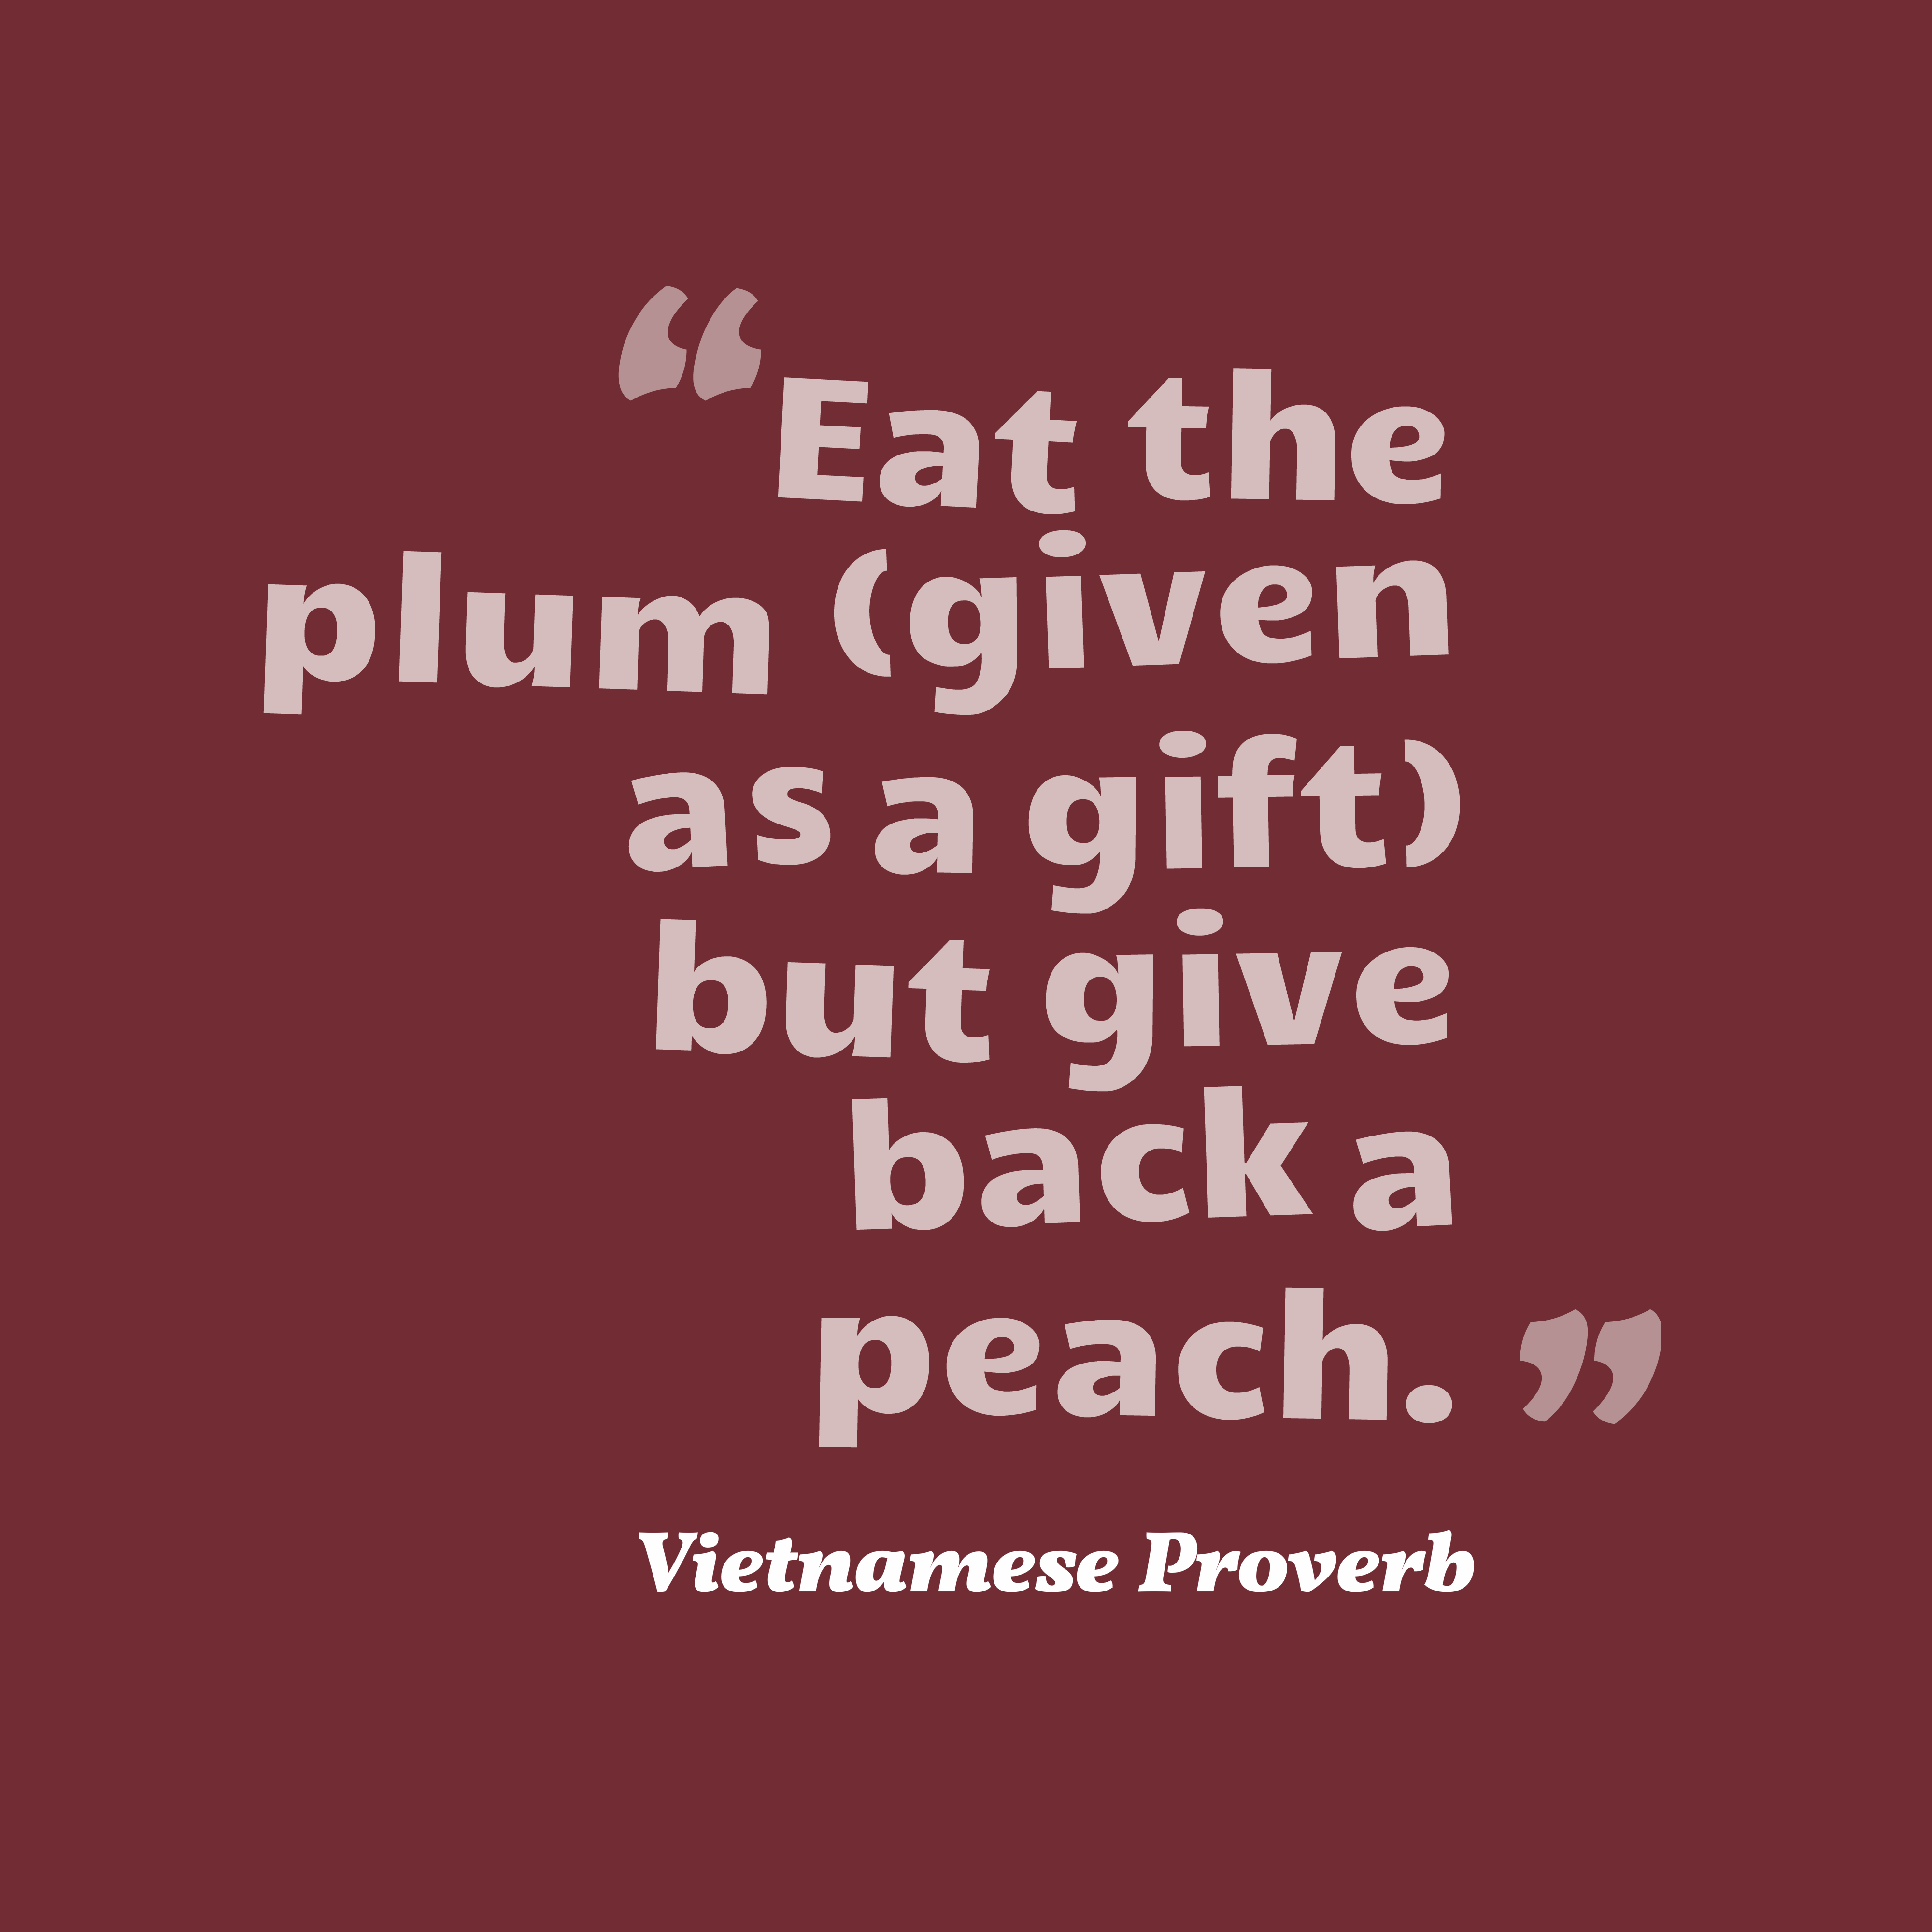 Quotes image of Eat the plum (given as a gift) but give back a peach.